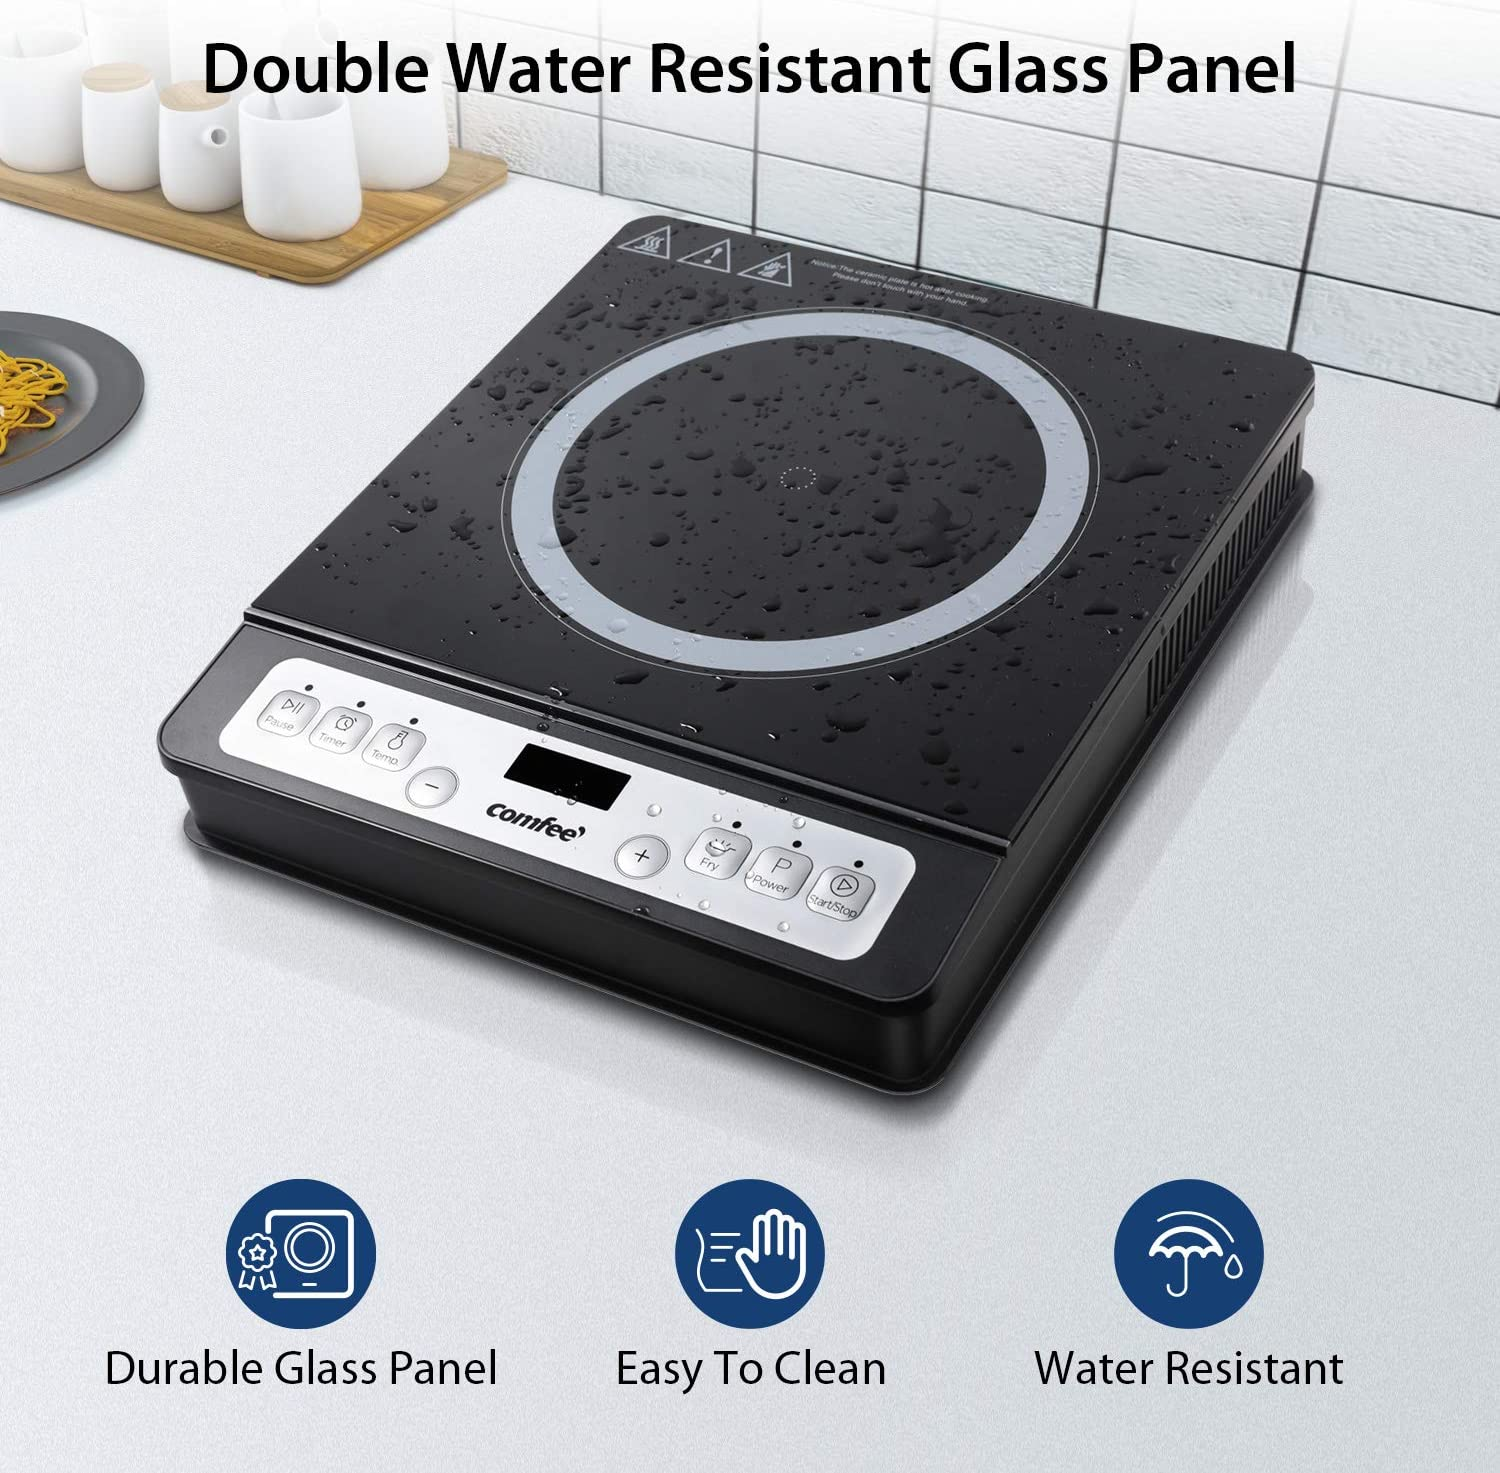 COMFEE/' 1800W Digital Electric Portable Induction Cooktop Countertop Burner with 8 Power /& Temperature Settings /& 180 Mins Timer Auto Shut Off and Energy-saving